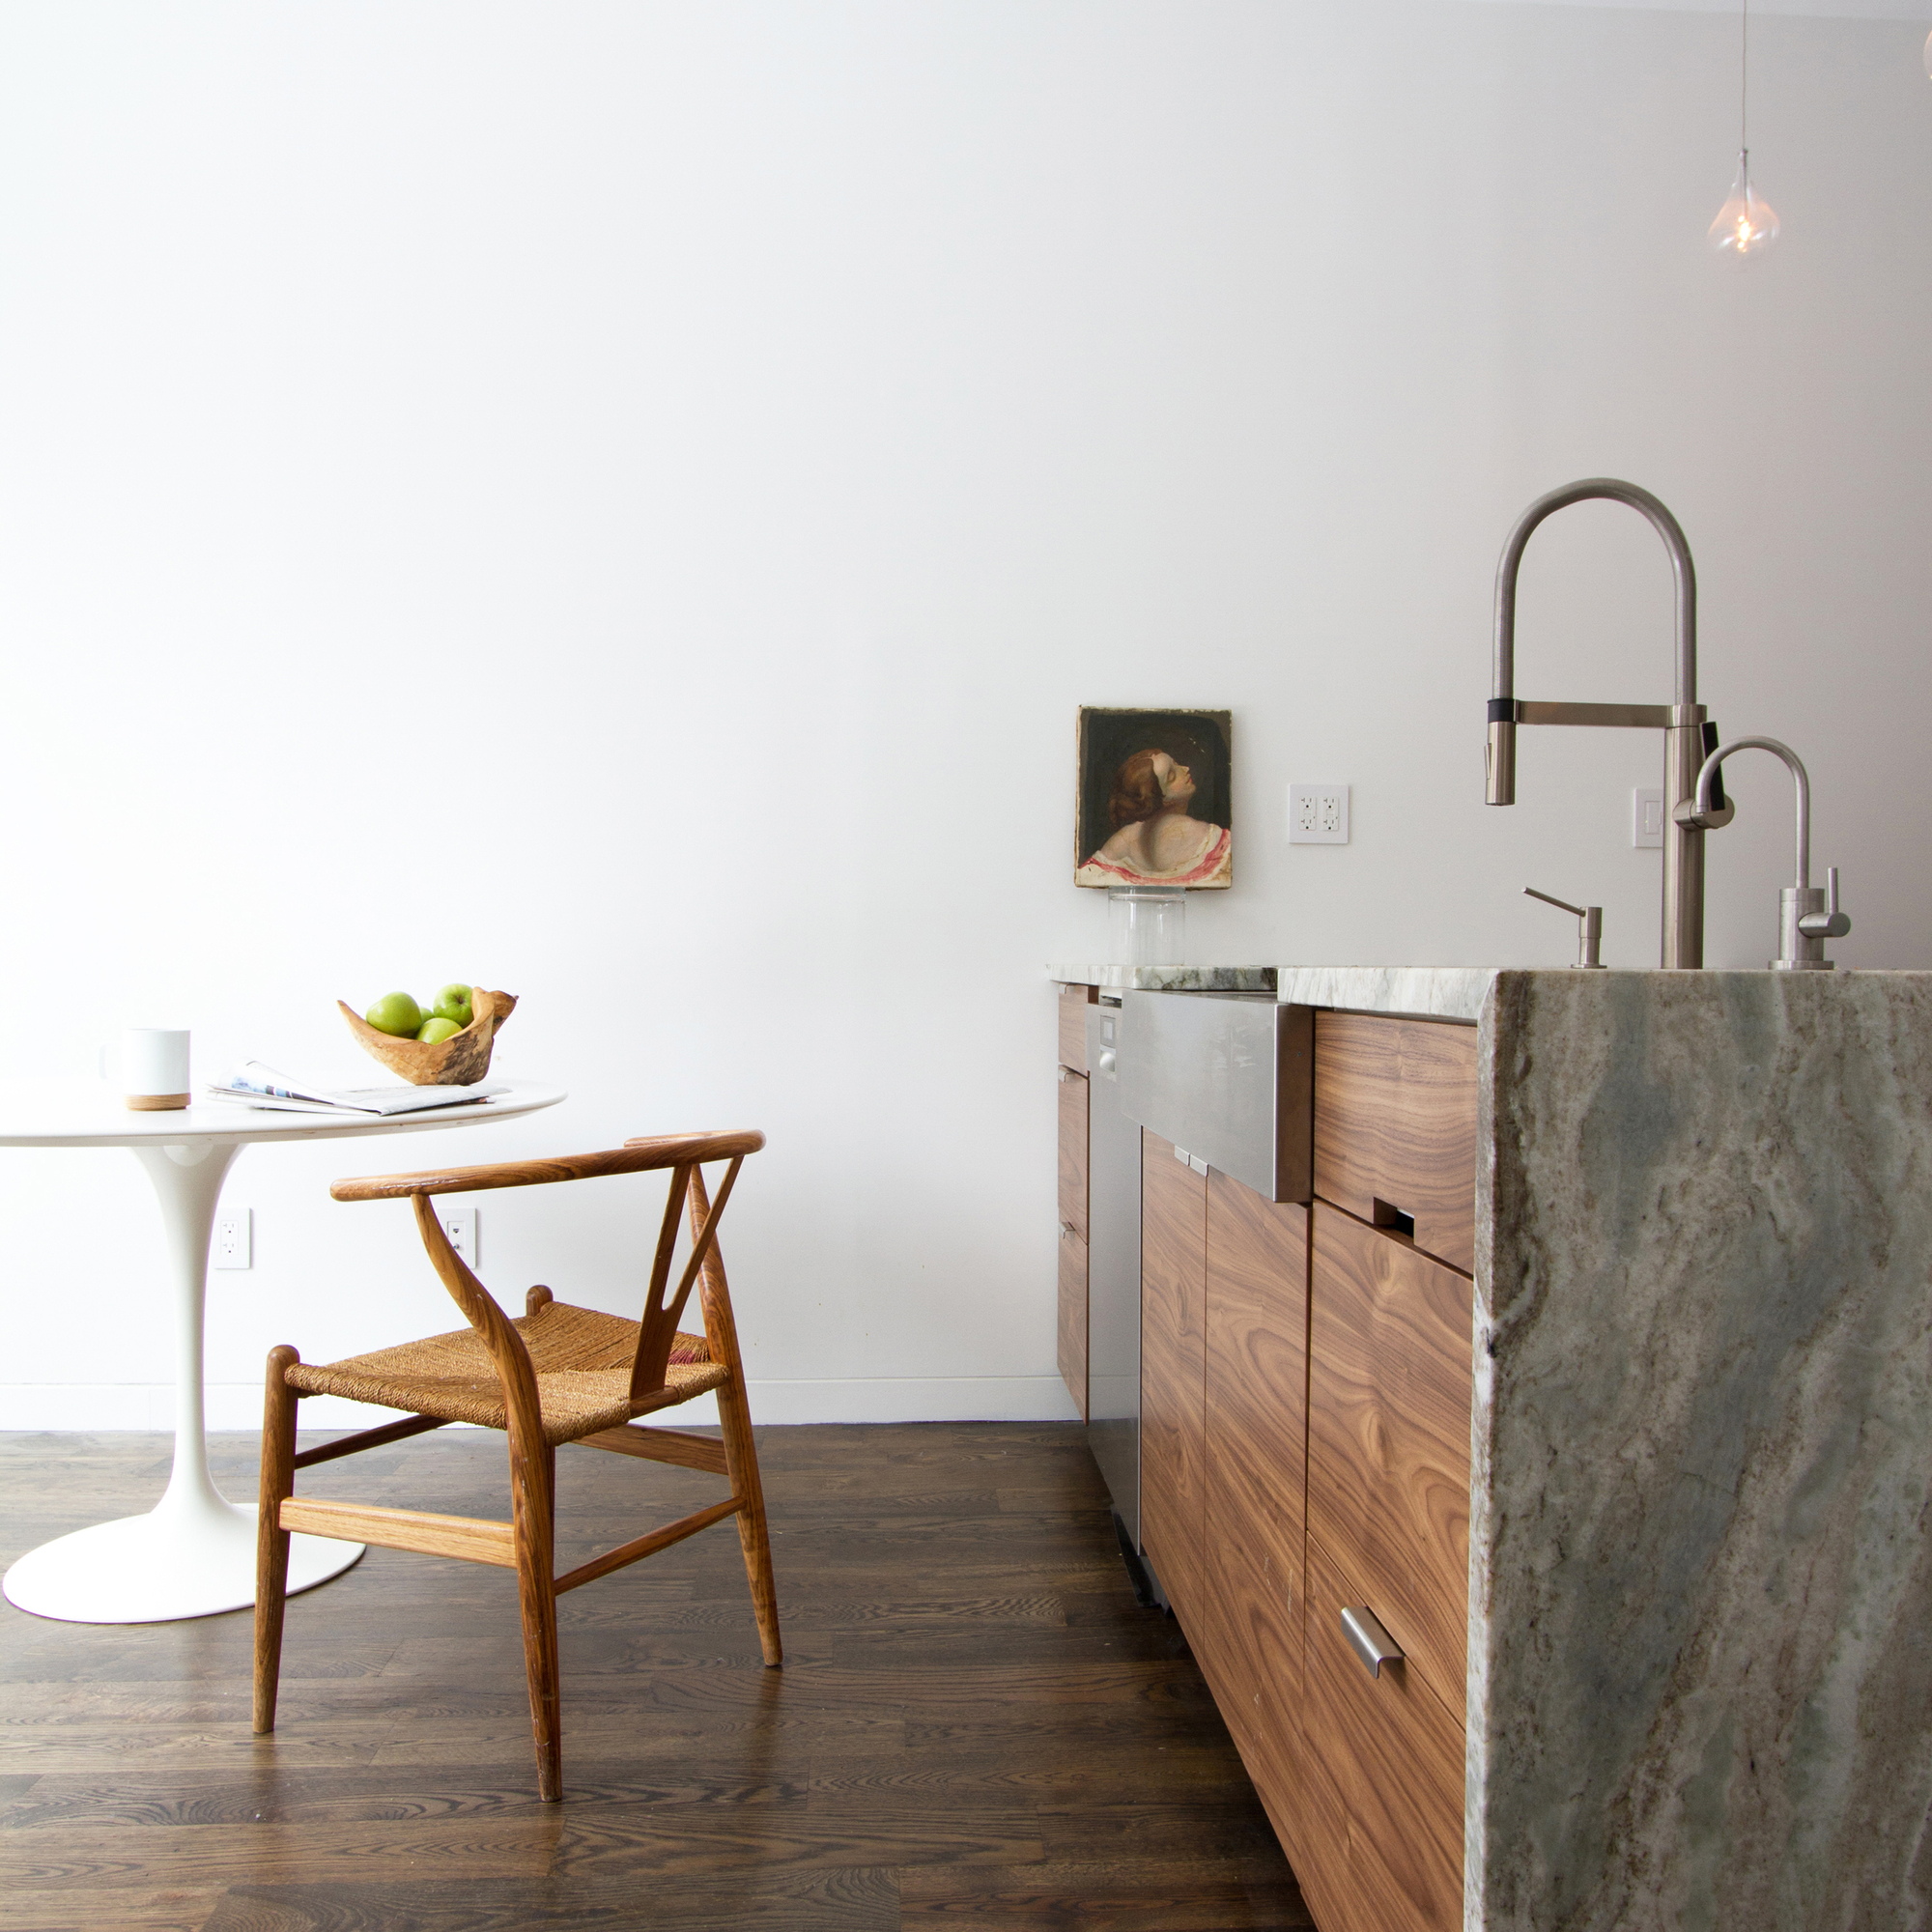 54f796a6e58ece86bb00002d_brooklyn-row-house-office-of-architecture_07_after_kitchen